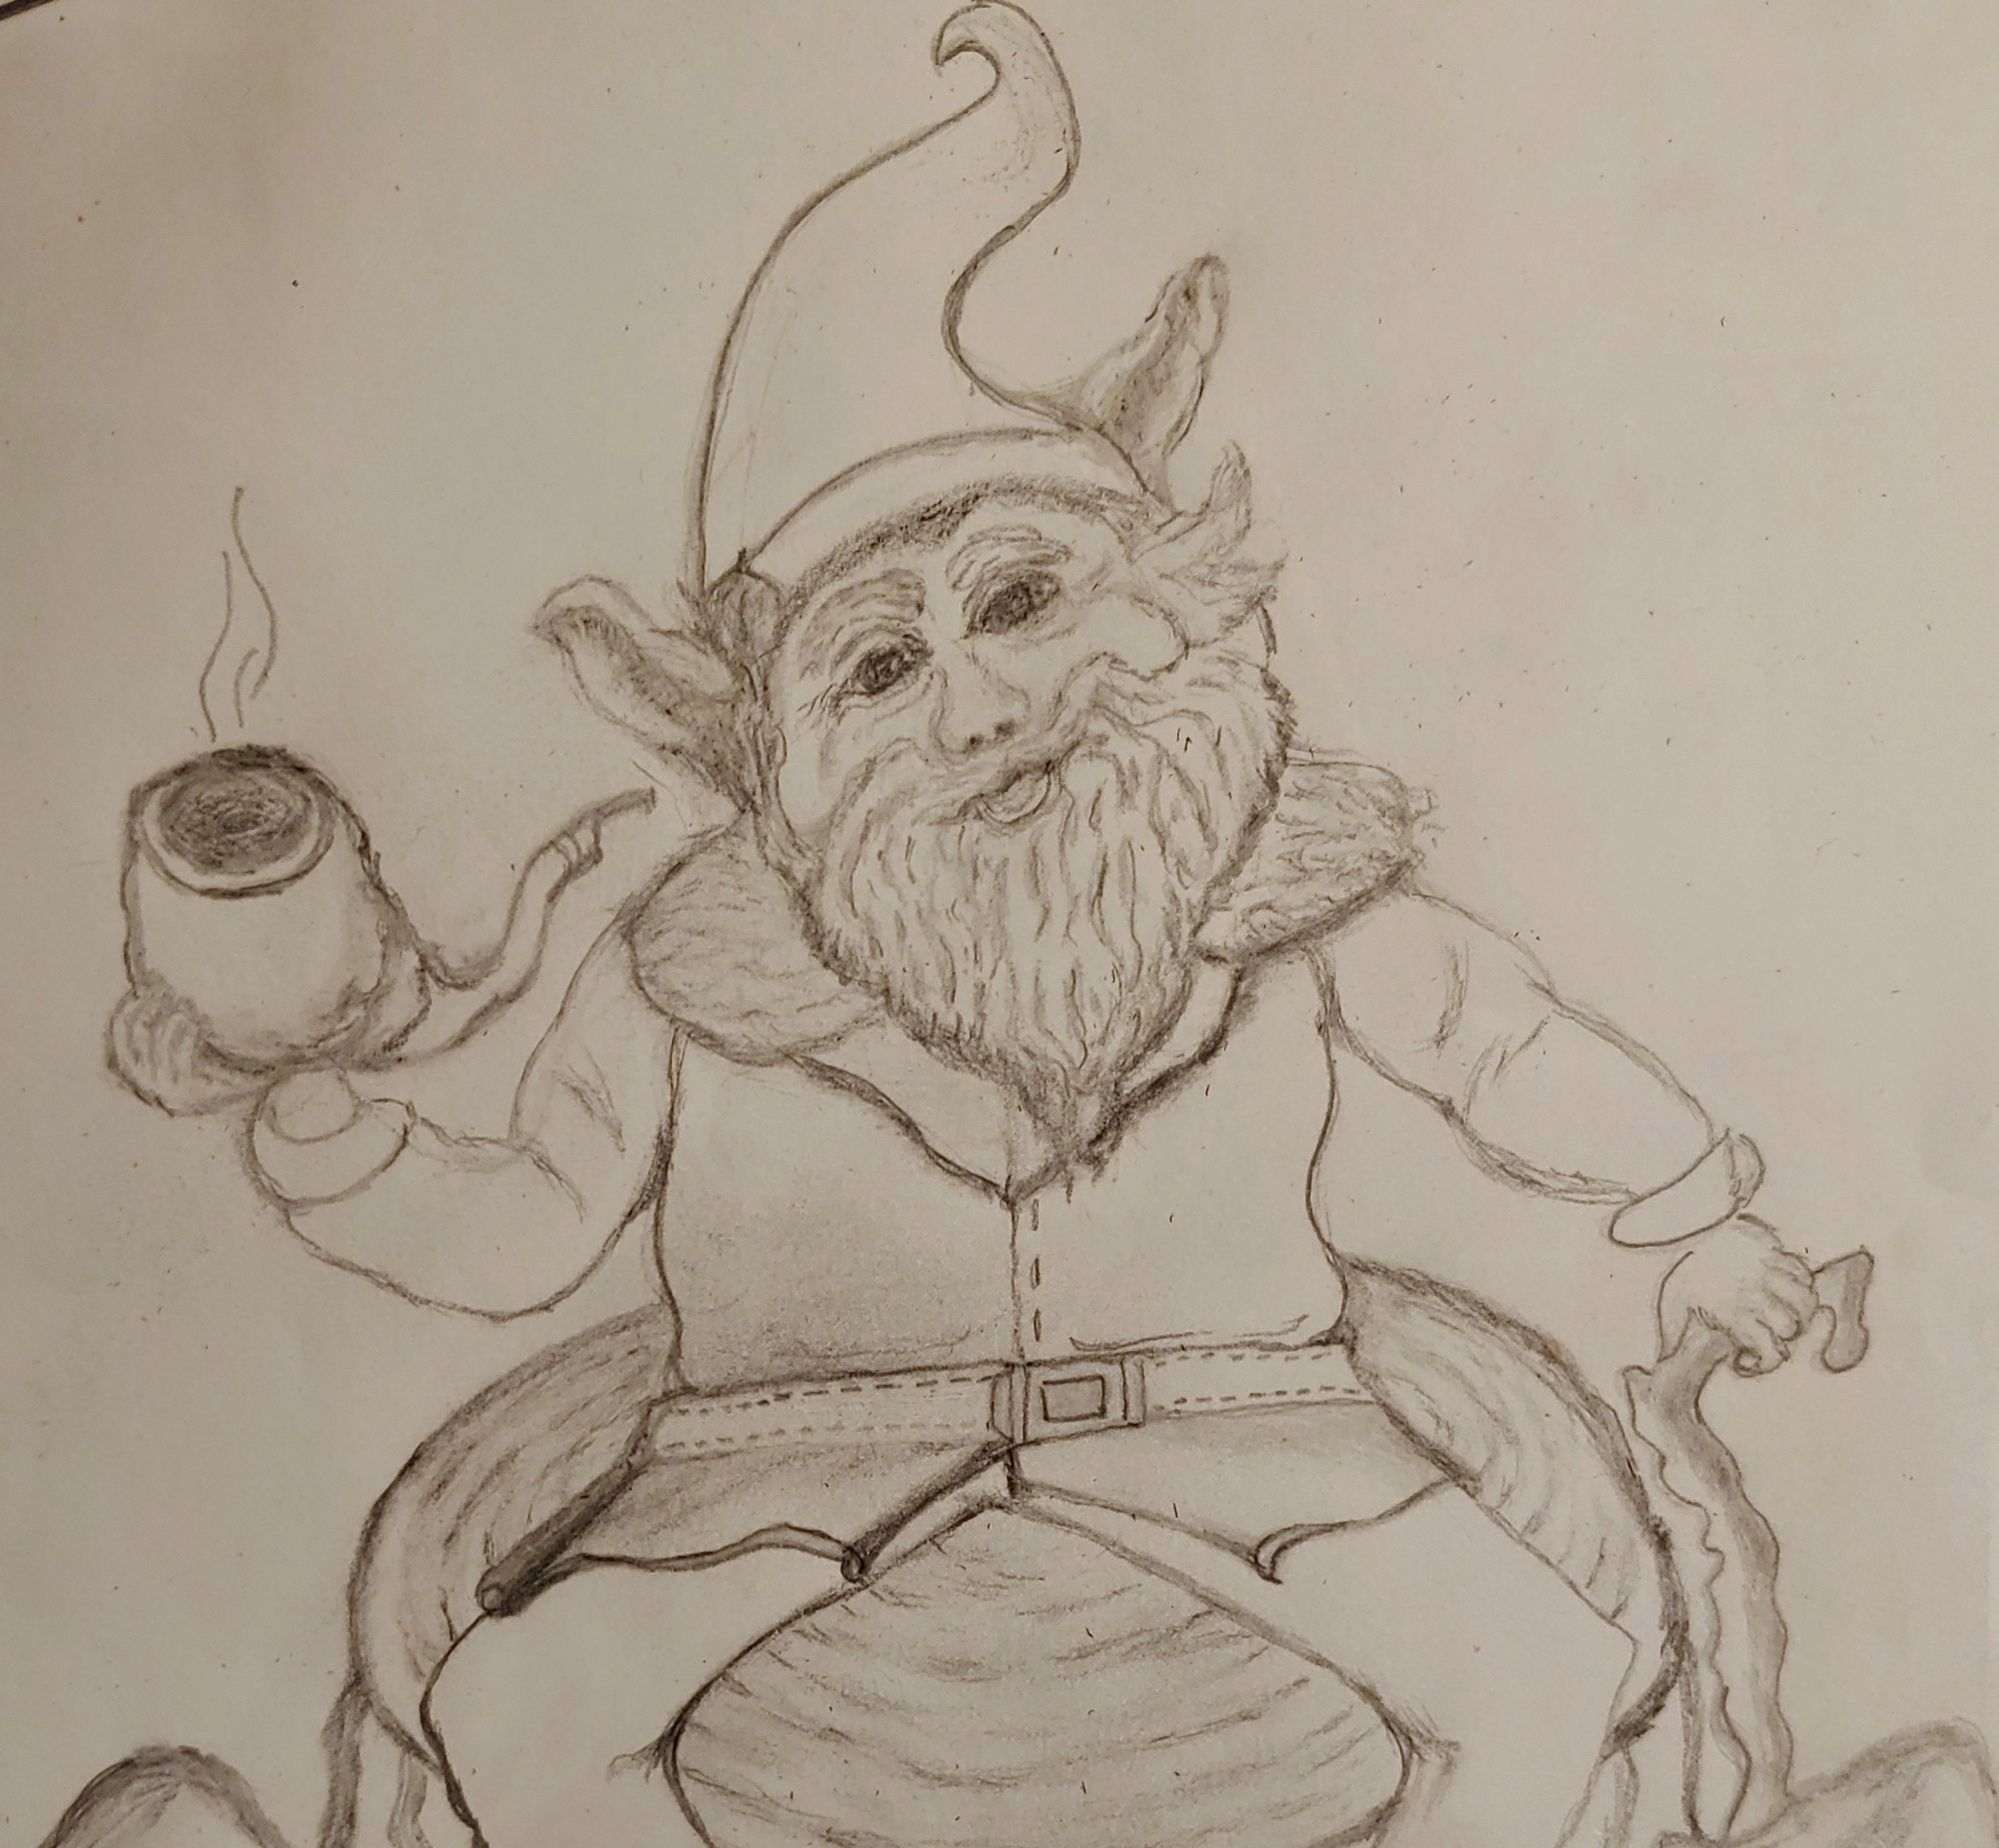 This was the start of my Gnome